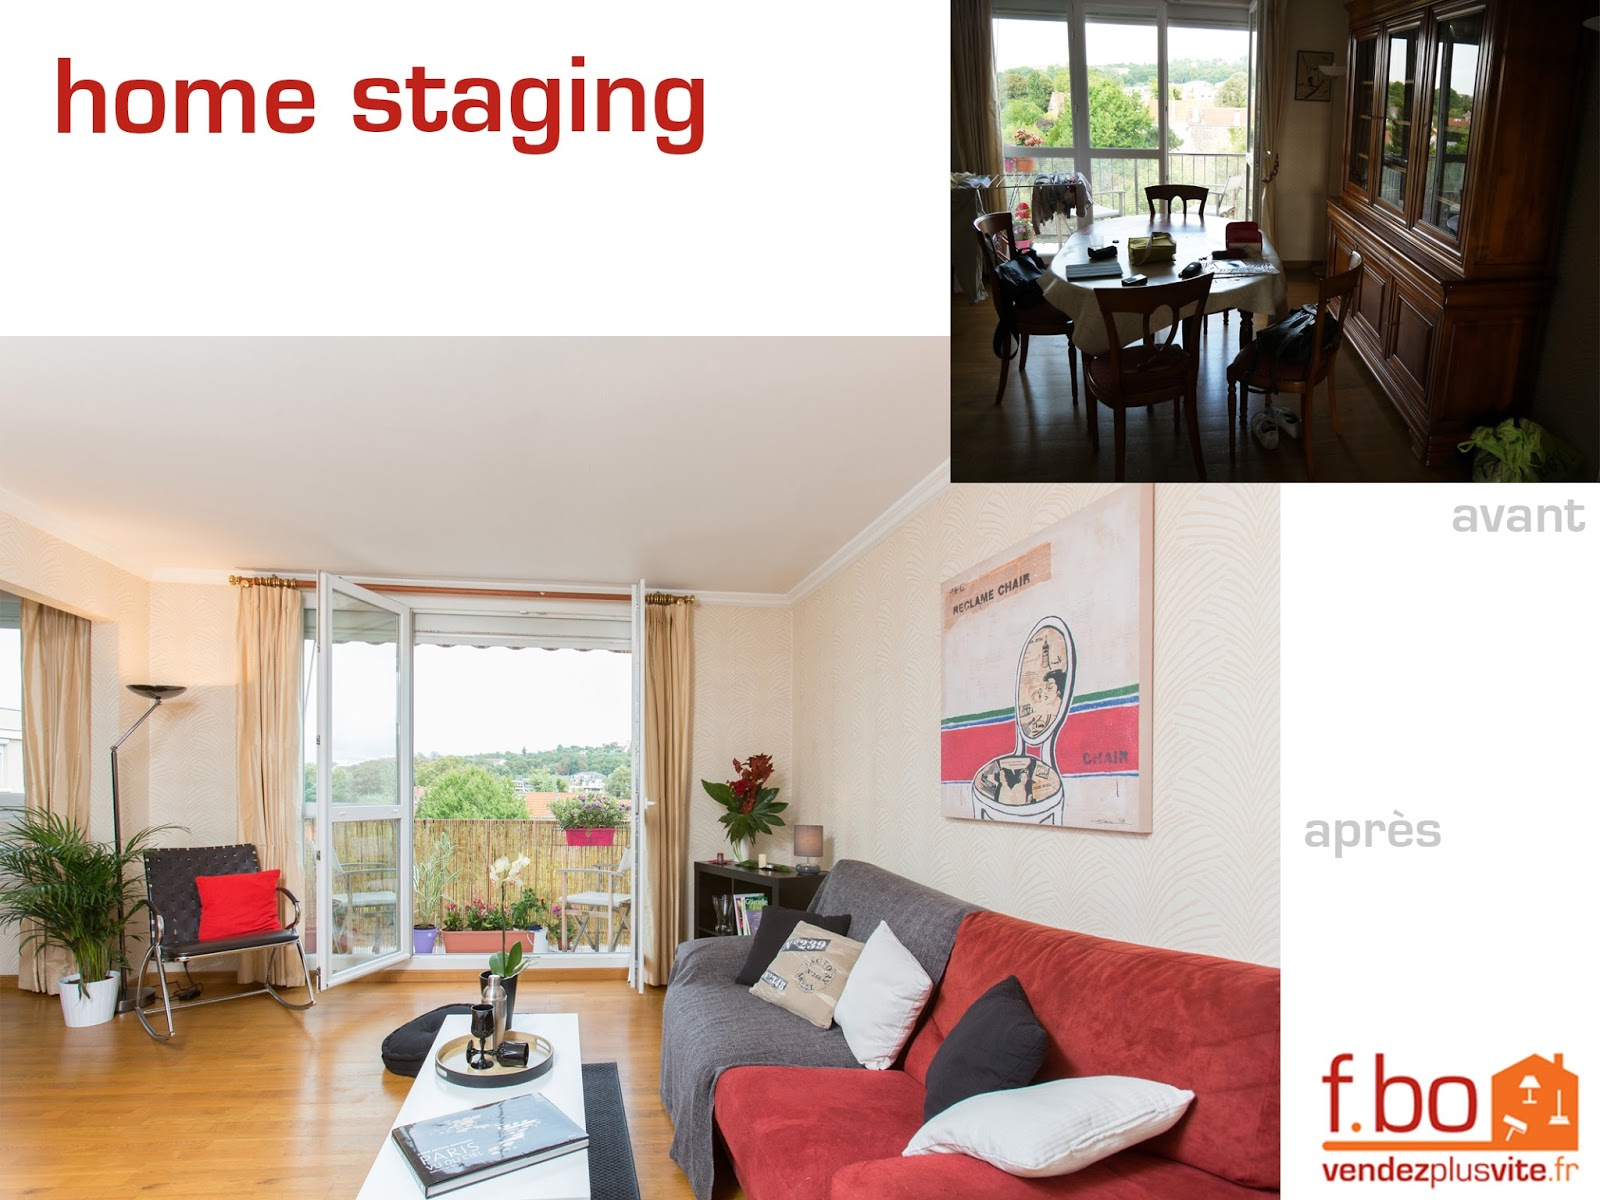 Home Staging Salon Home Staging Salon Avant Apres Latest Avant Apres Home